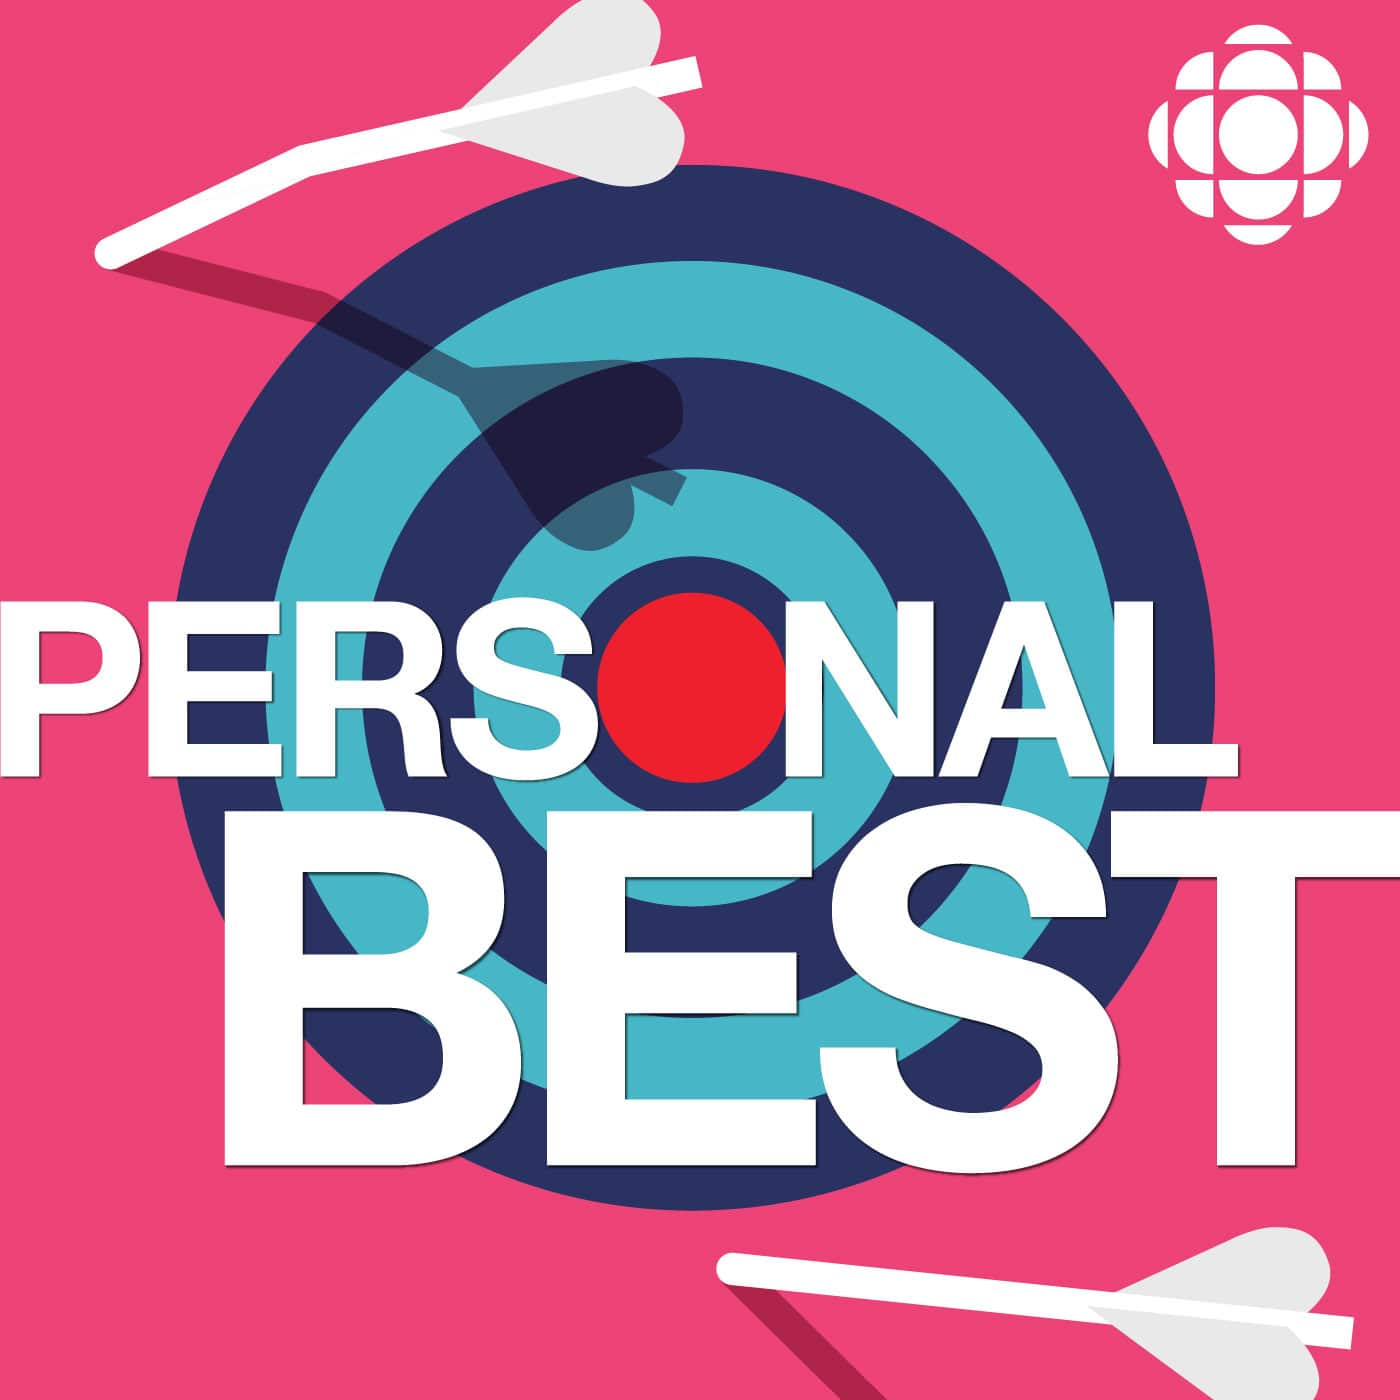 personal podcasts podcast cbc radio comedy listened listen broadcasting personalbest template favorite stories susiej